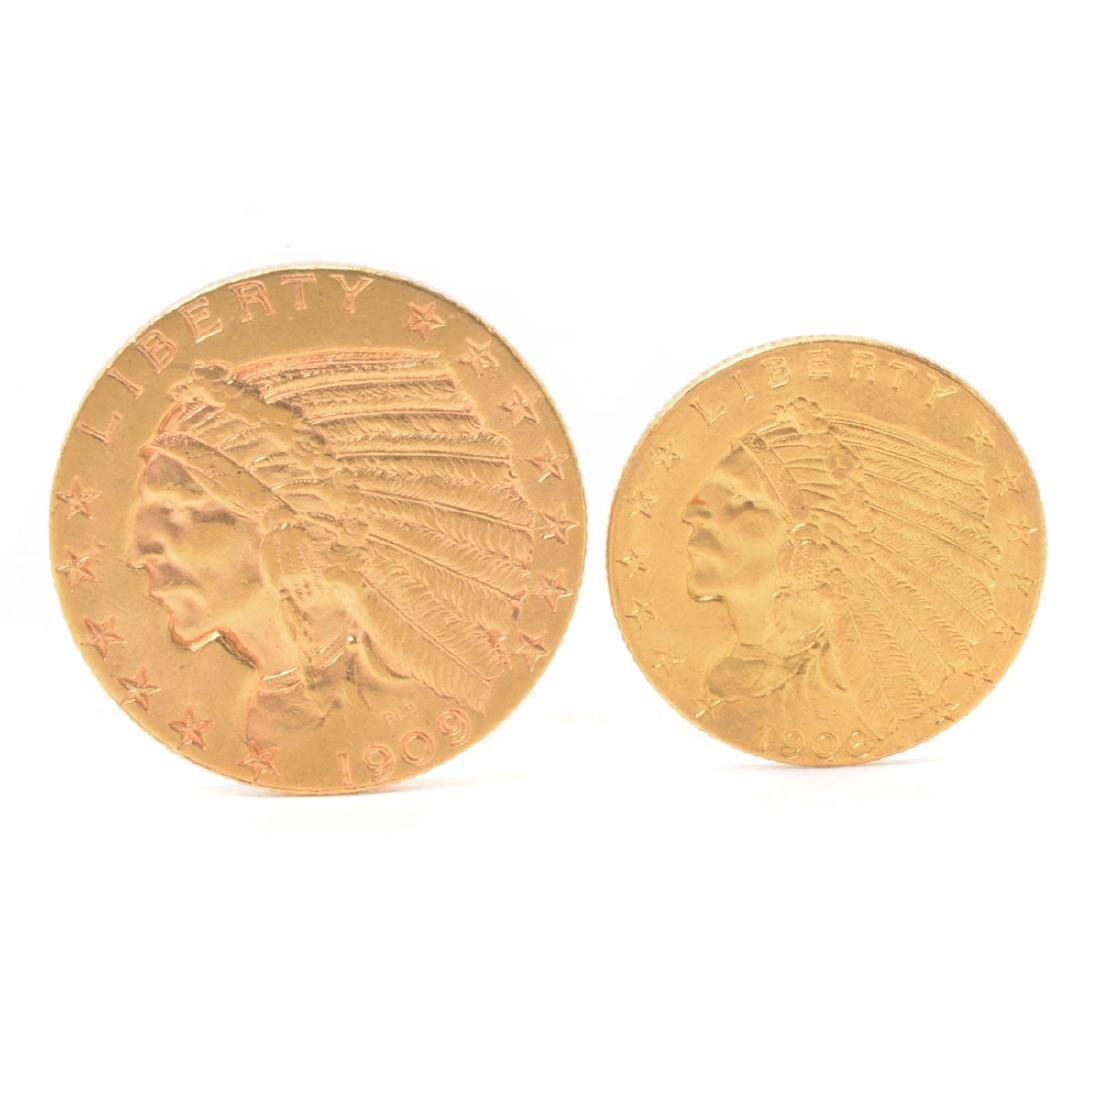 Lot of 2 US 1909(D) Indian Head $5.00 and 1908 Indian